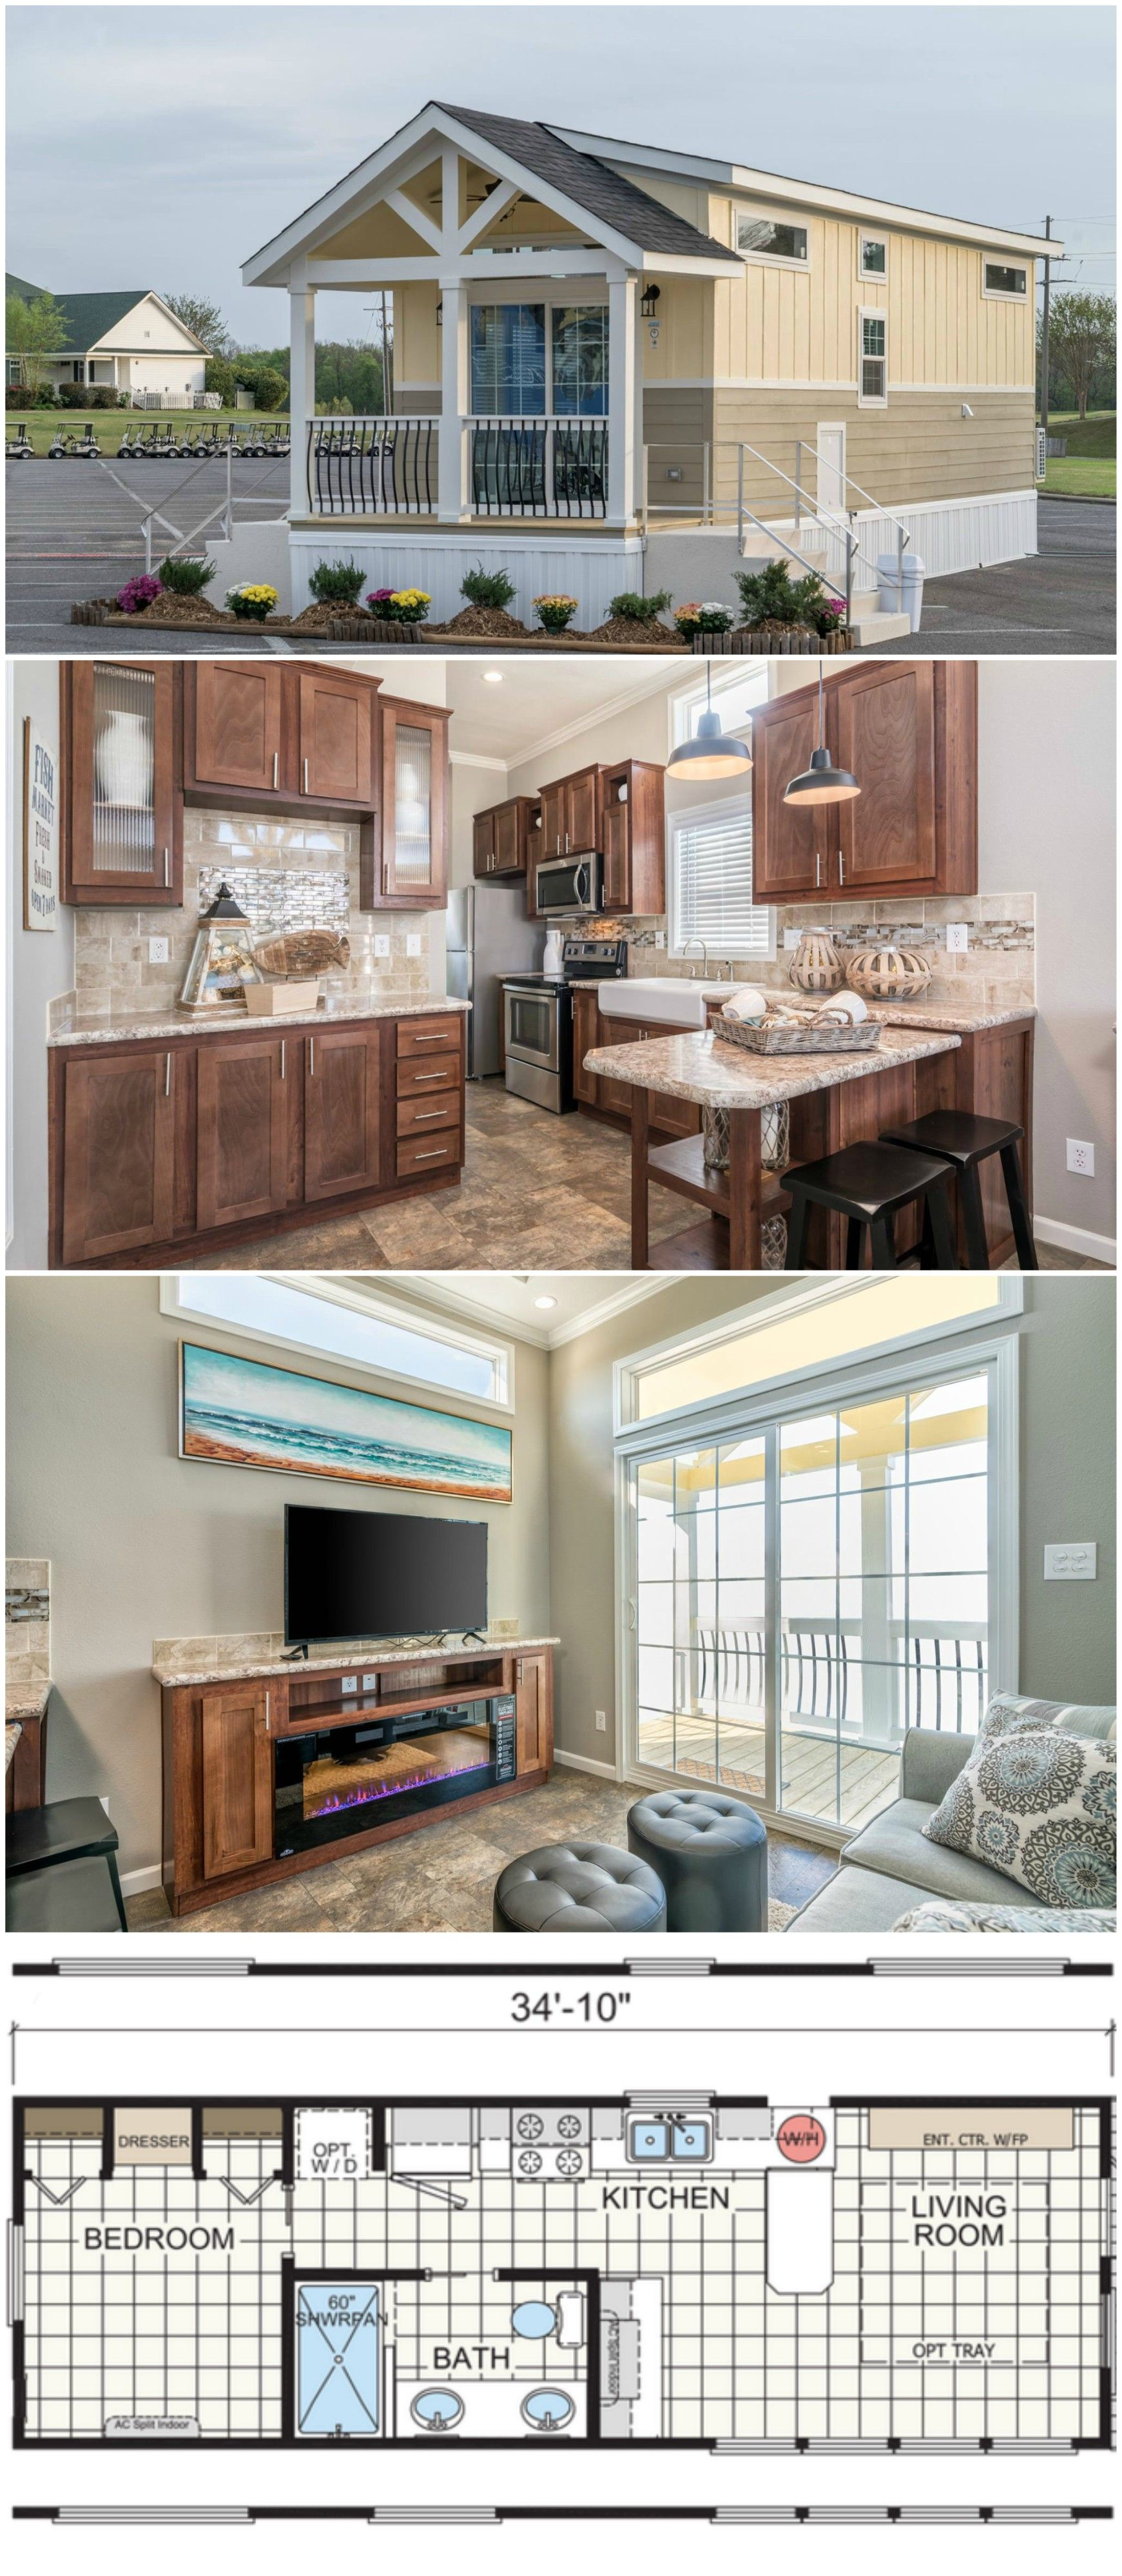 This park model home is a 399-square-foot one bedroom and one bathroom tiny home dream. The kitchen has full-size appliances and a farmhouse sink. The well-appointed living room features a beautiful tray ceiling and plenty of windows for an abundance of natural light. Pin, share and comment to let us know what you think! #tinyhomes